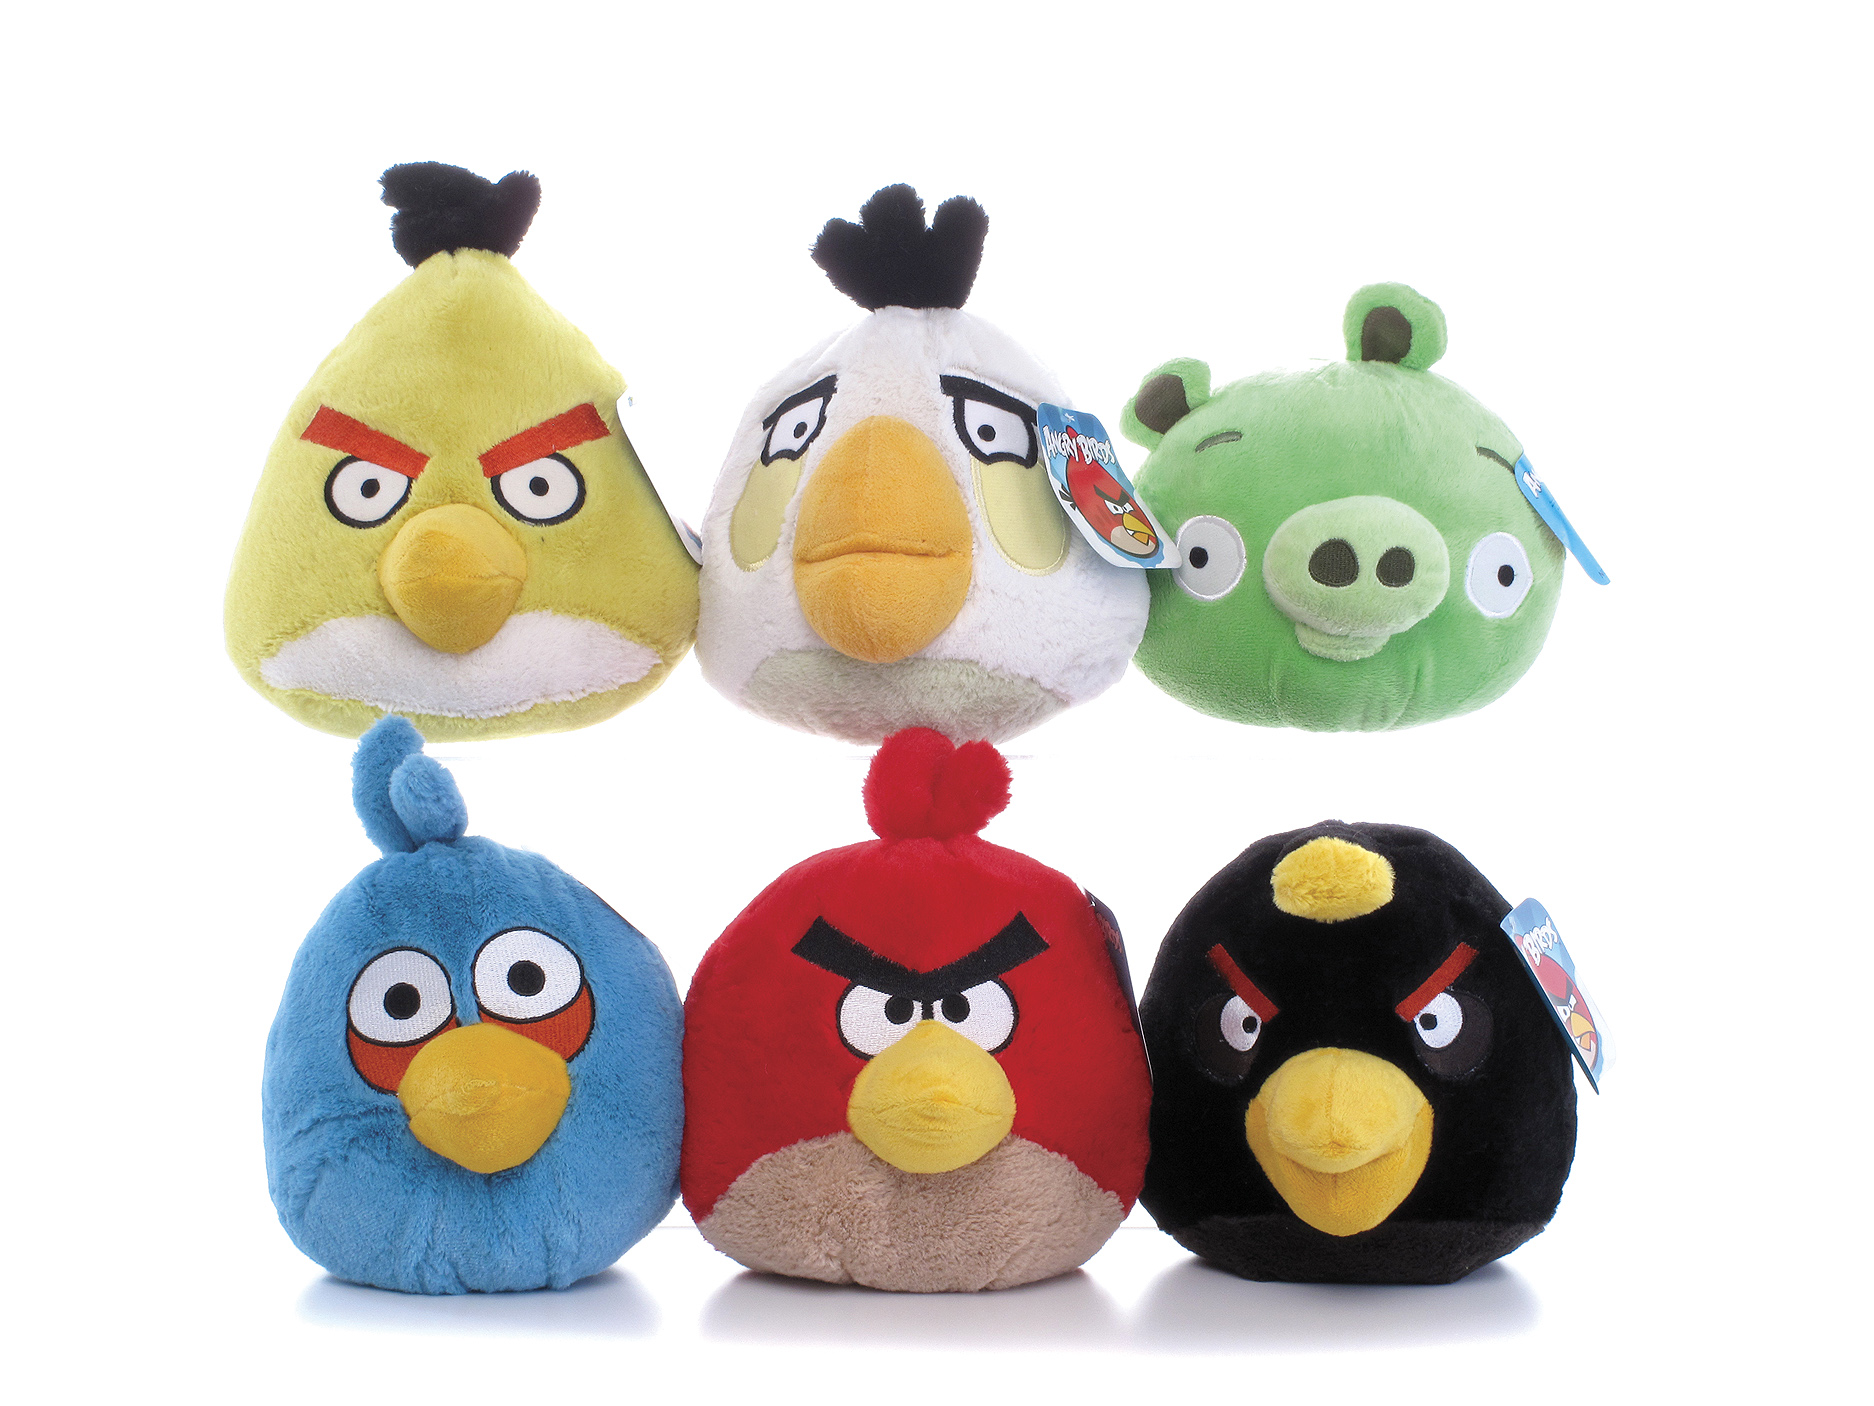 Angry birds with sounds 4 inch plush soft stuffed toy gift game brand new ebay - Angry birds toys ebay ...